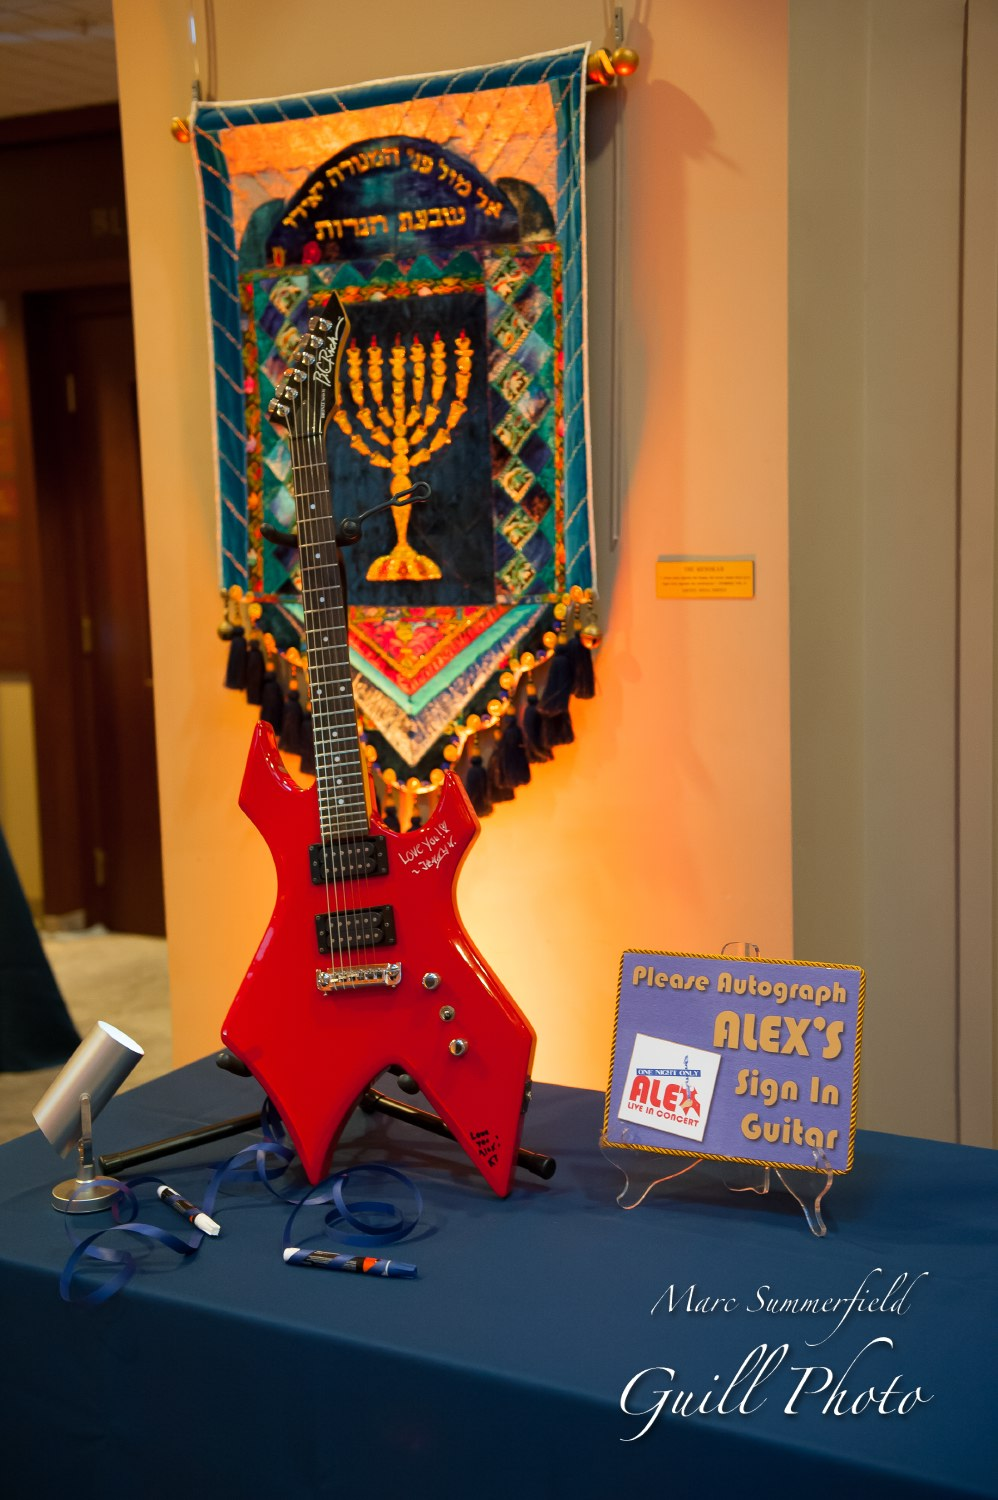 Alex Live in Concert   Sign In Guitar   Bar Mitzvah concert theme, music theme, singing theme, guitar theme, keyboard theme, decor by Innovative Party Planners at Oheb Shalom